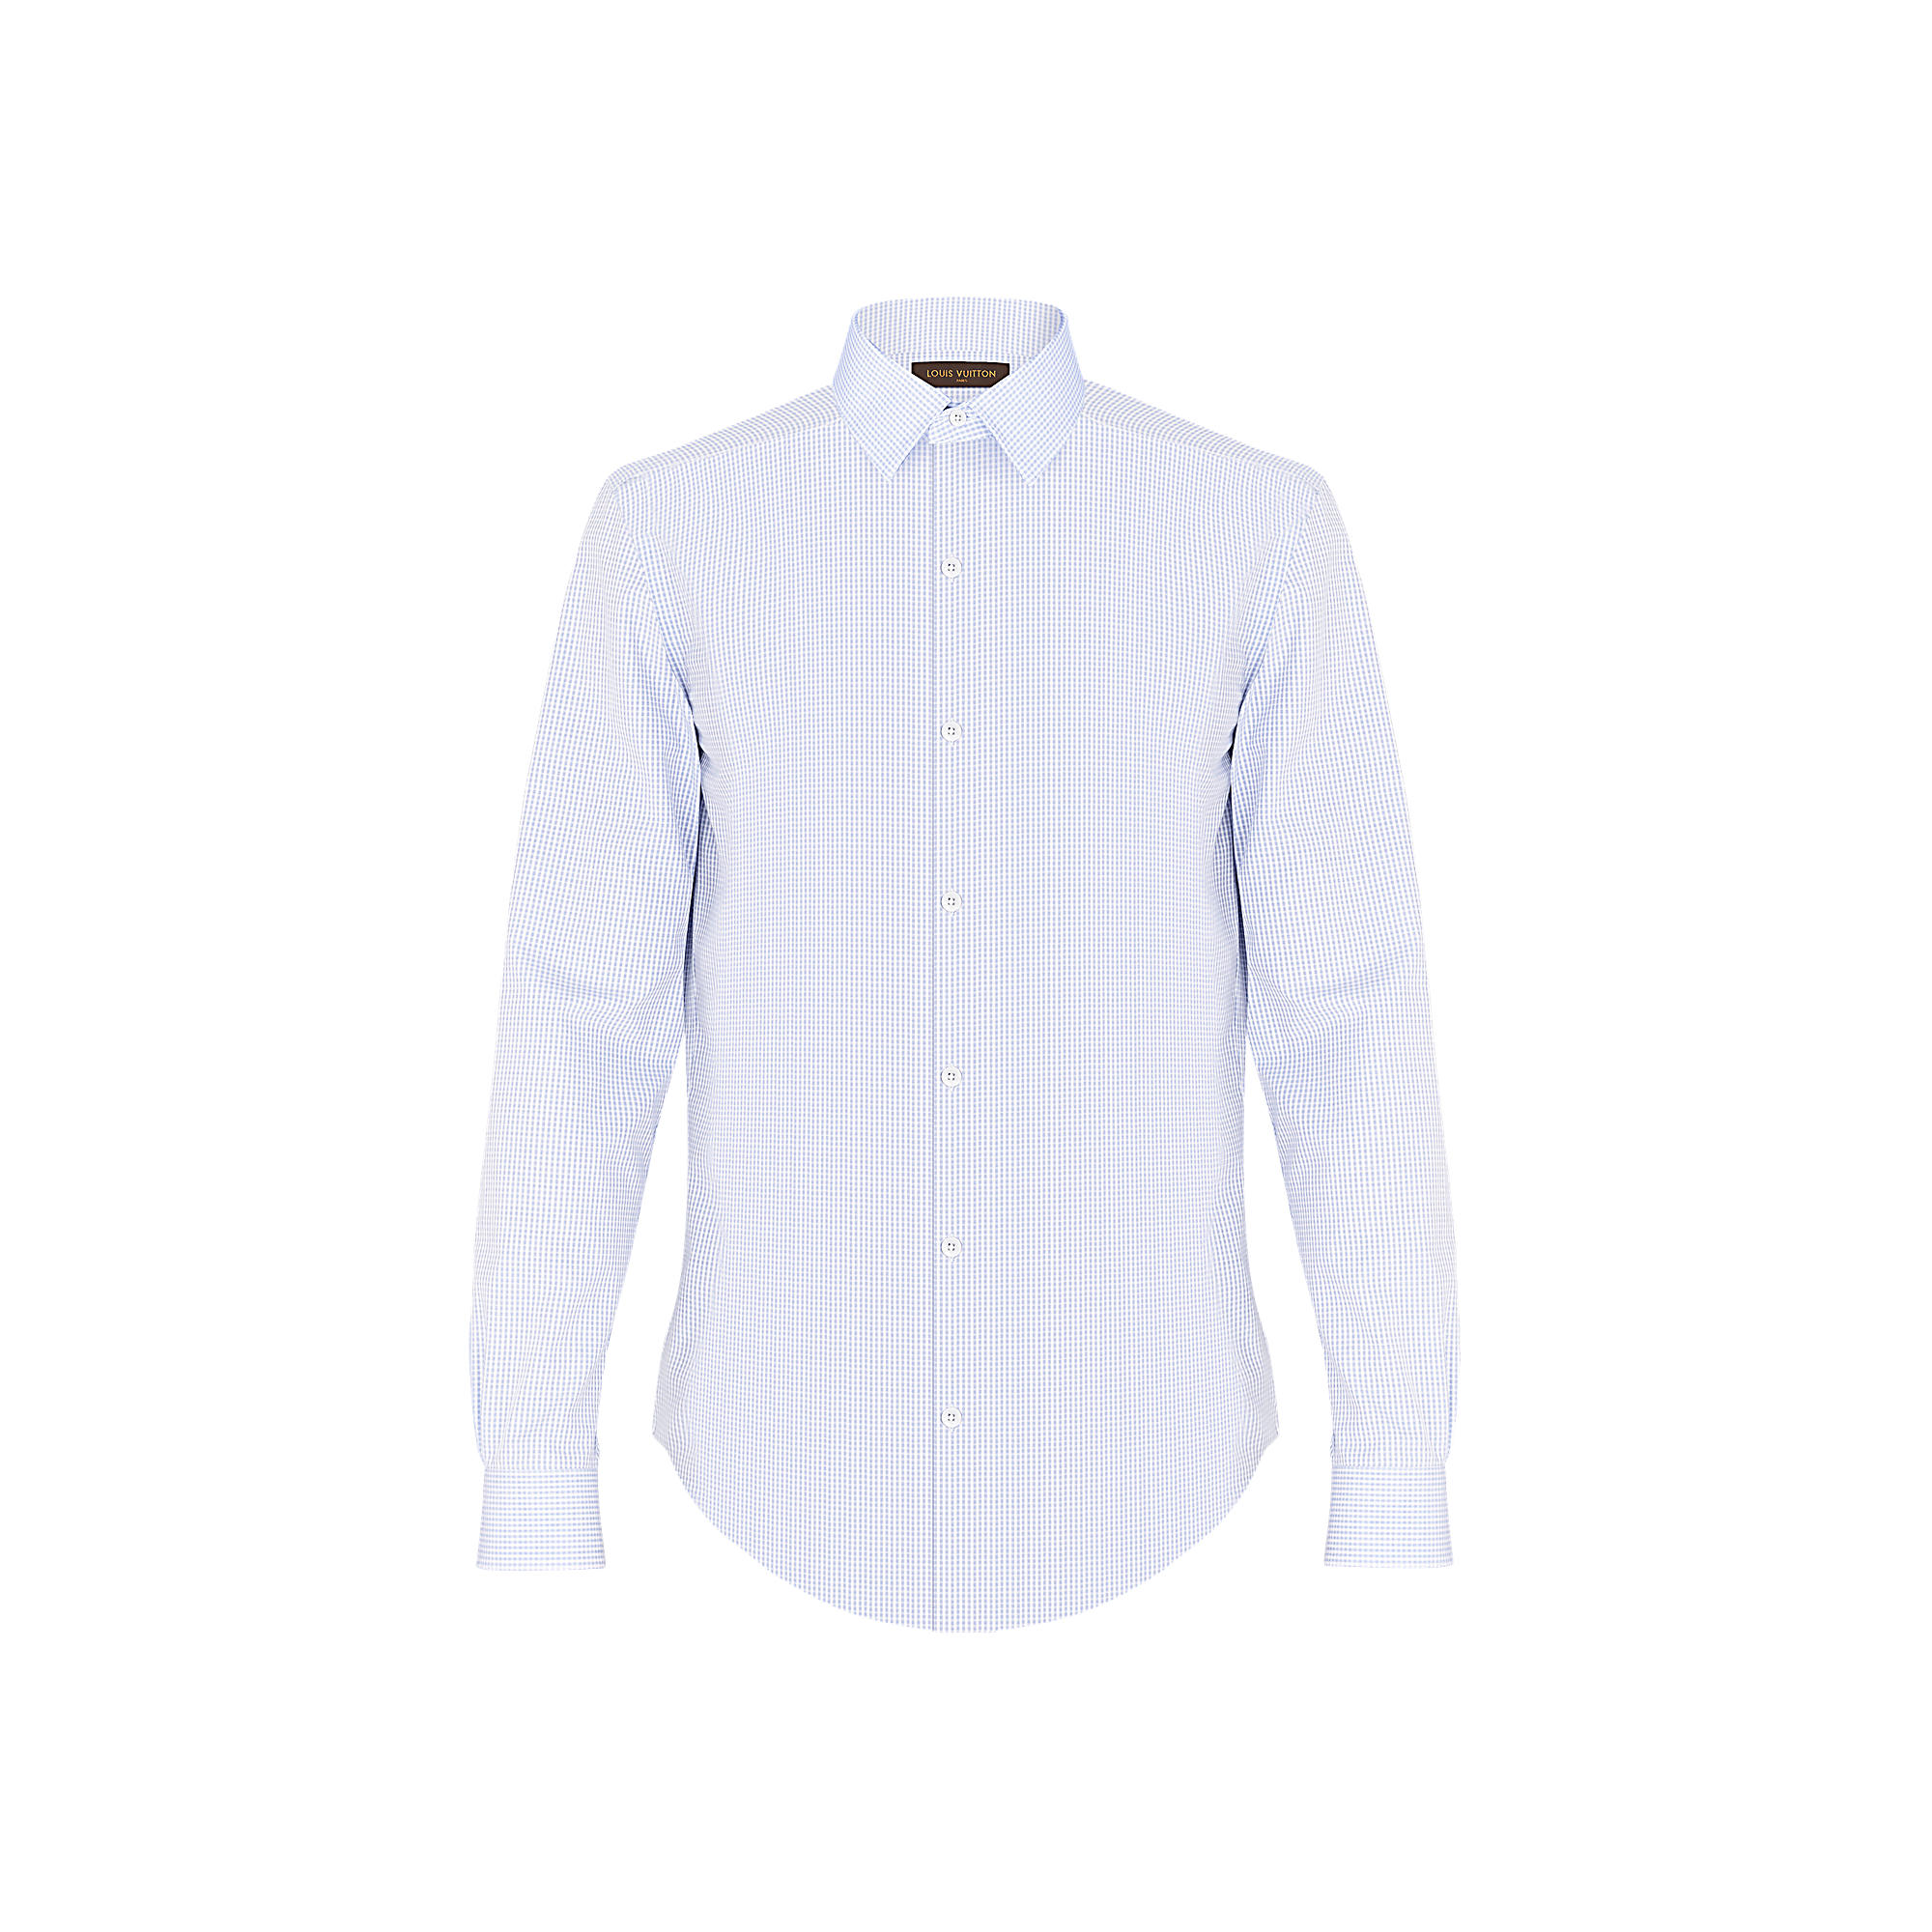 Louis Vuitton Uomo Camicia classica con colletto quadrato